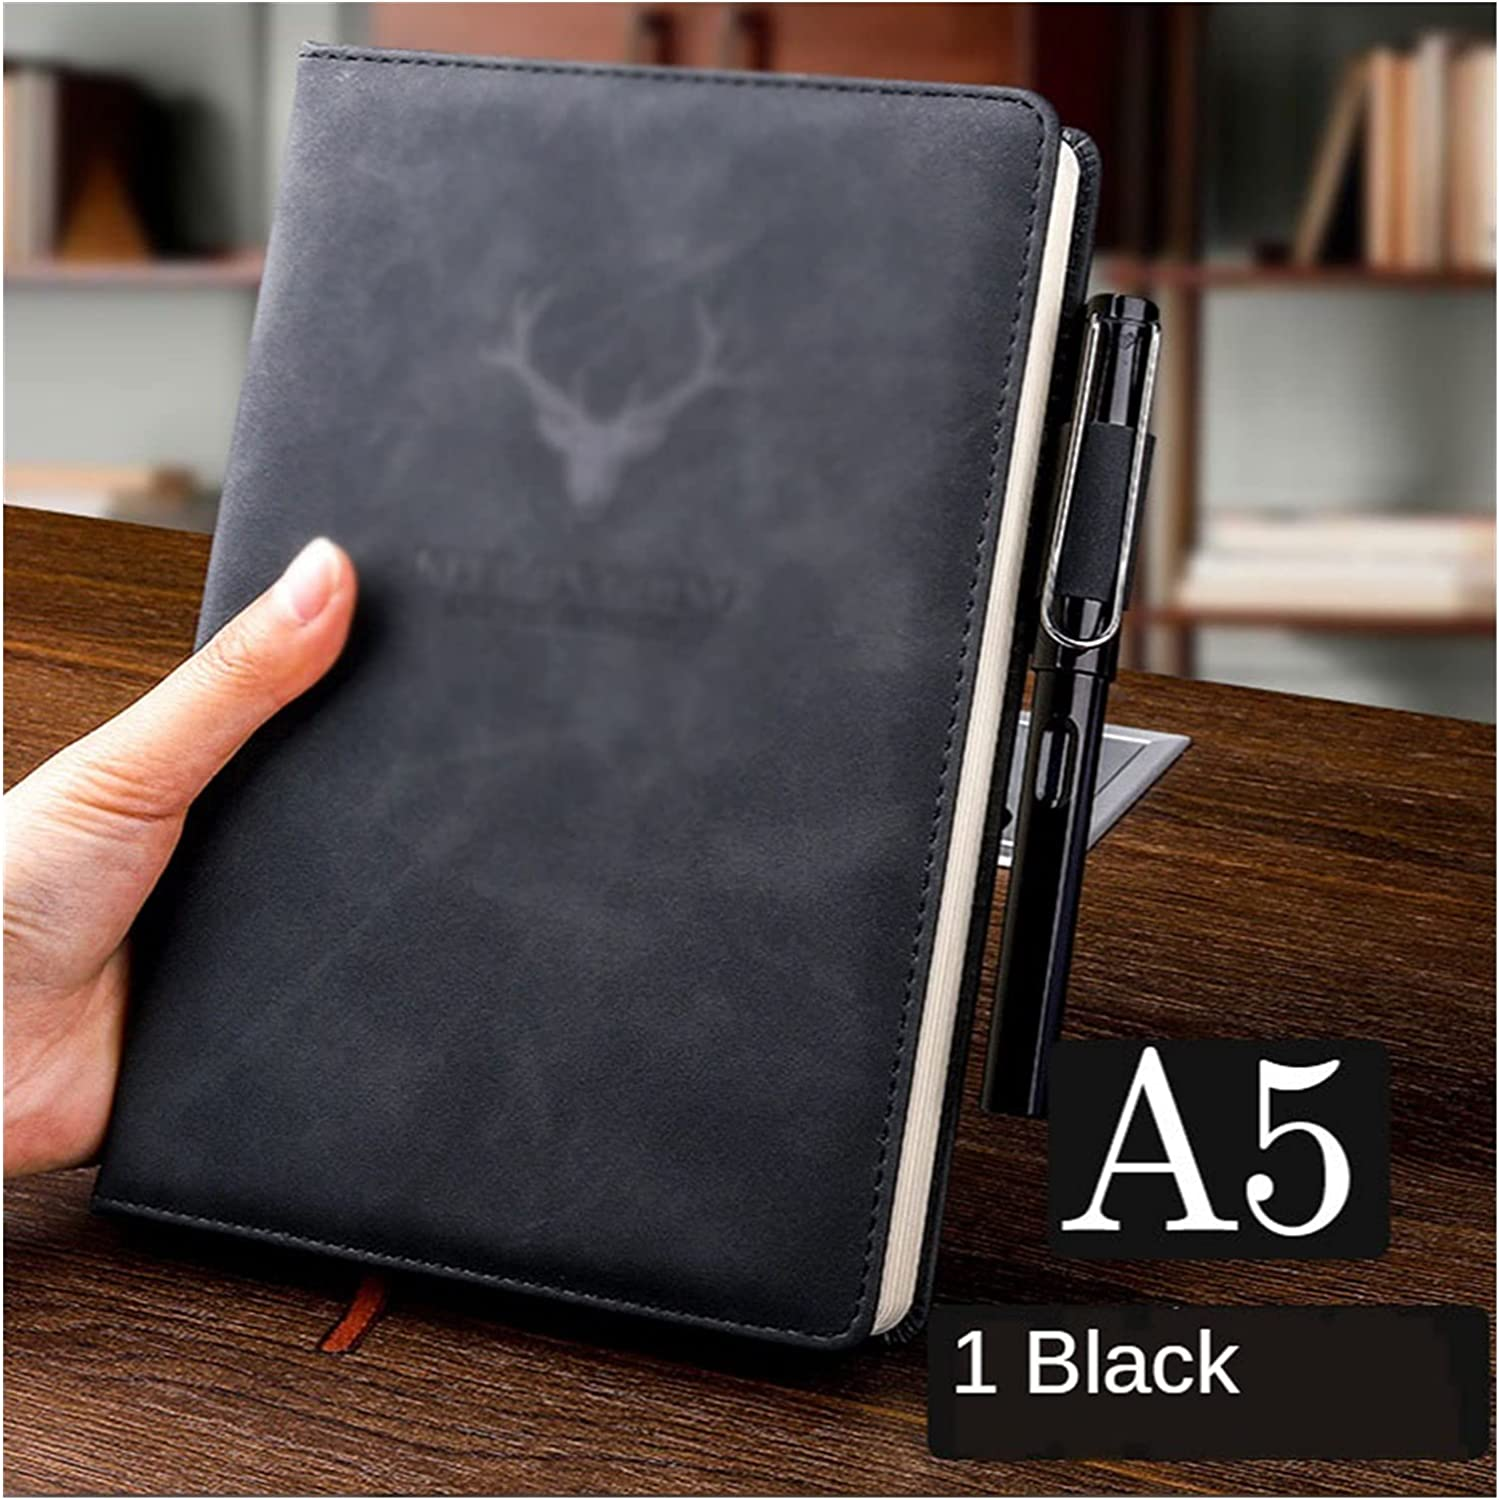 security Notebook 360 Pages Super Popular shop is the lowest price challenge Thick Busines Journal Daily A5